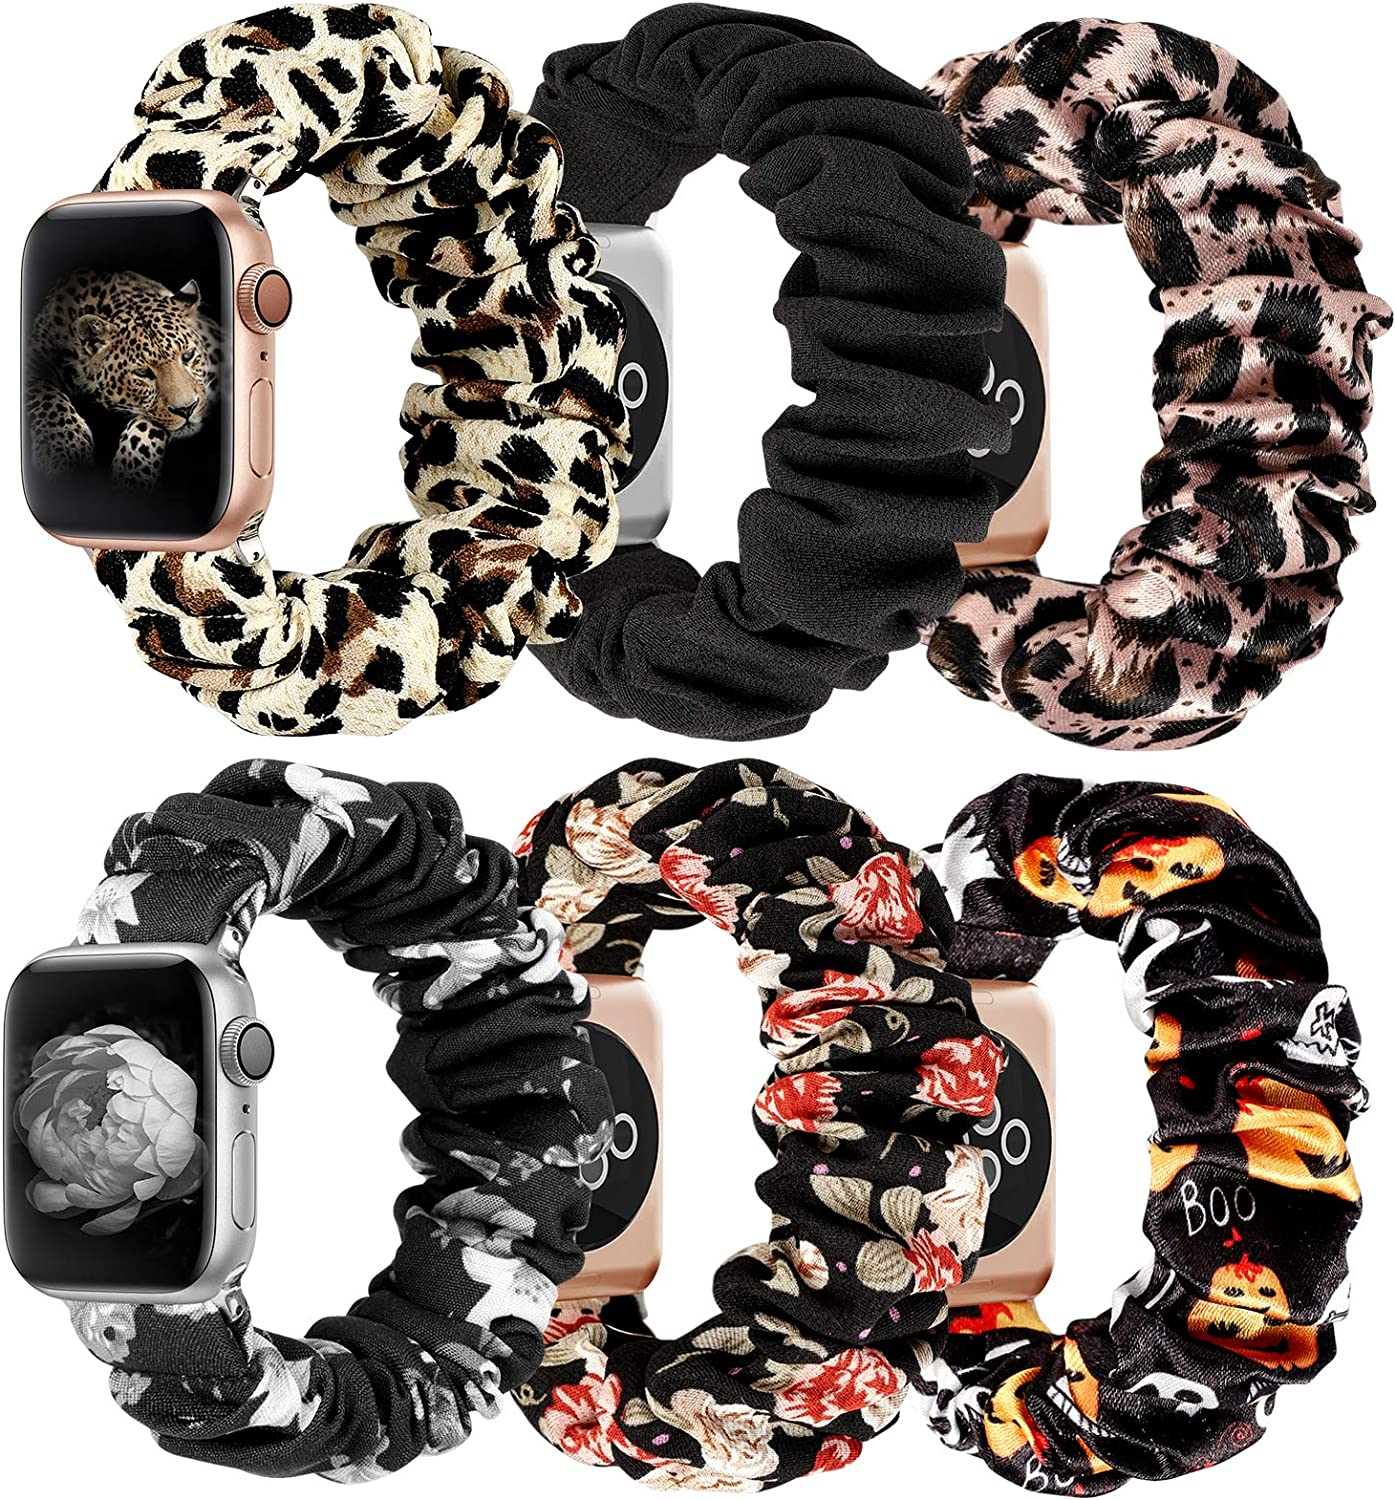 MITERV Compatible with Apple Watch Band 38mm 40mm Soft Floral Fabric Elastic Scrunchies iWatch Bands for Apple Watch Series 6,SE,5,4,3,2,1 6 Pack Small